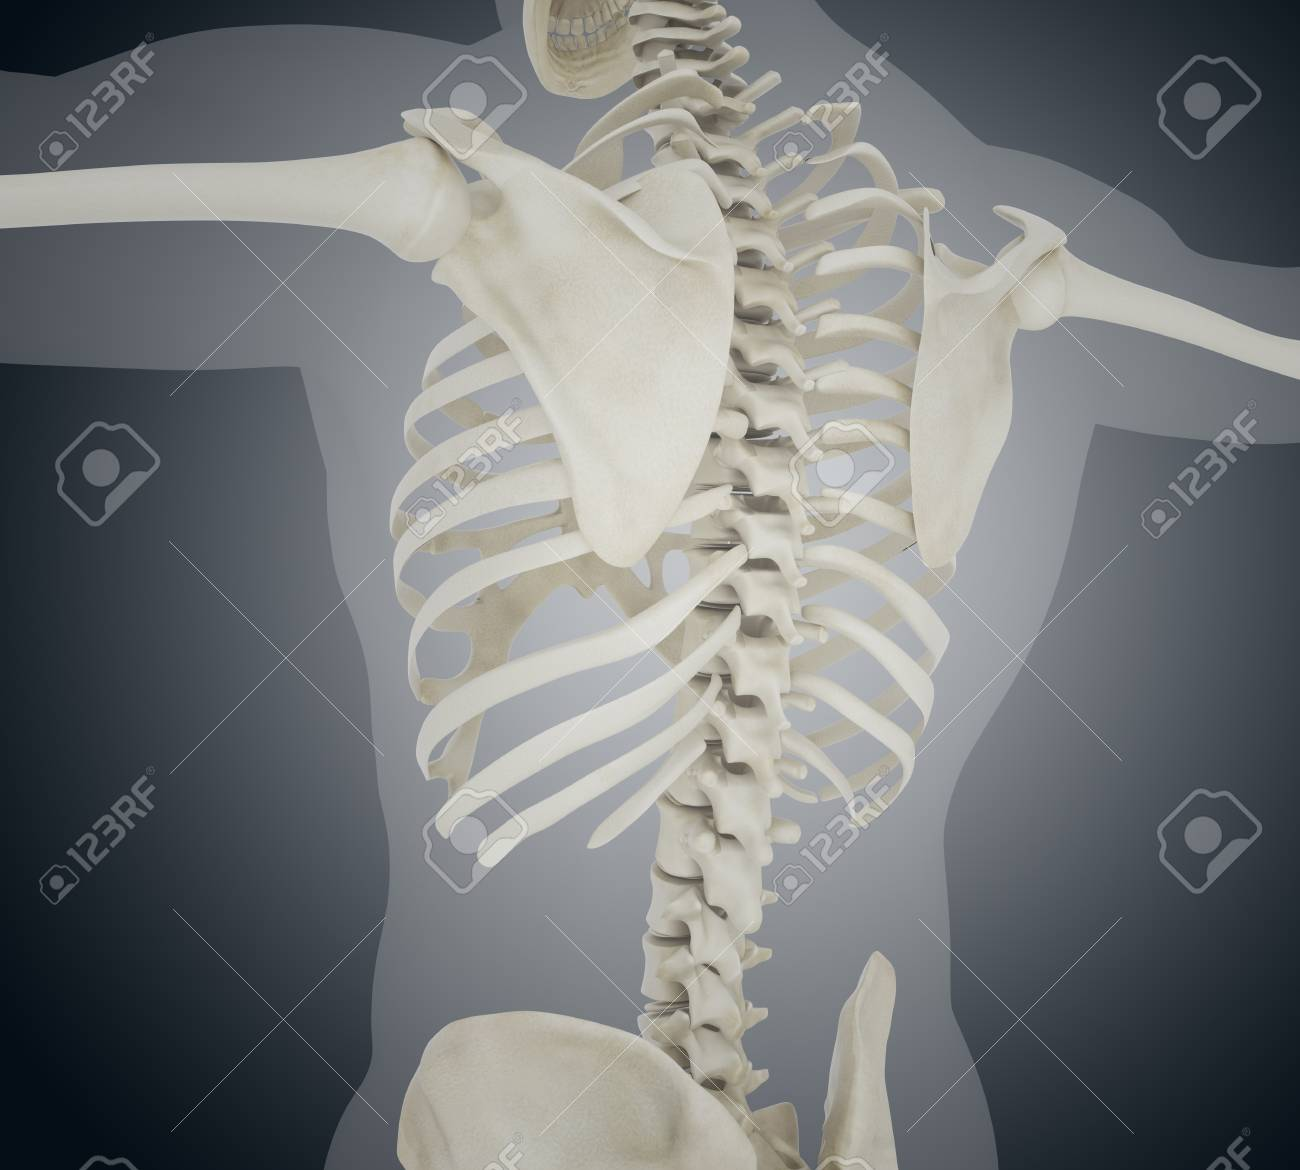 3d Llustration Human Skeleton Back Skeleton Anatomy Concept Stock